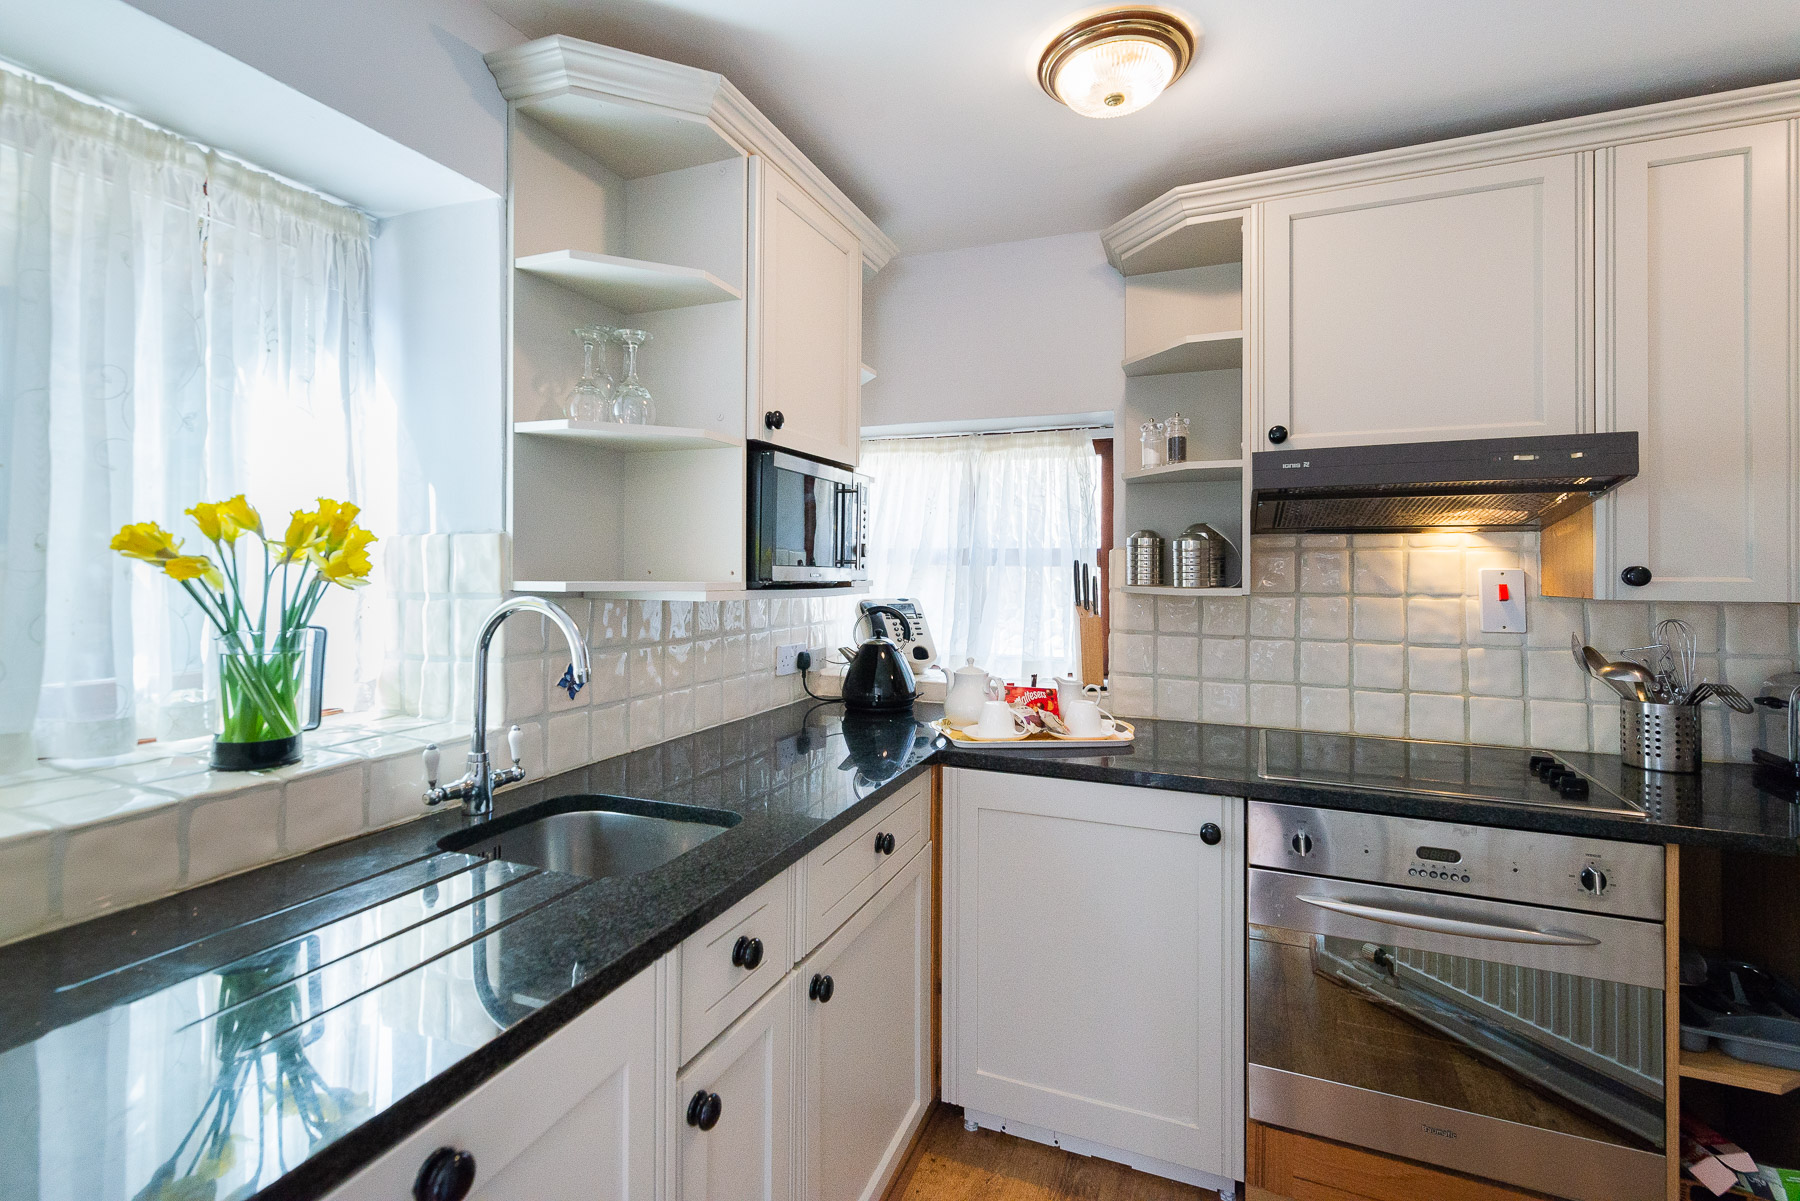 Courtyard Cottage Kitchen. A pet friendly holiday cottage.